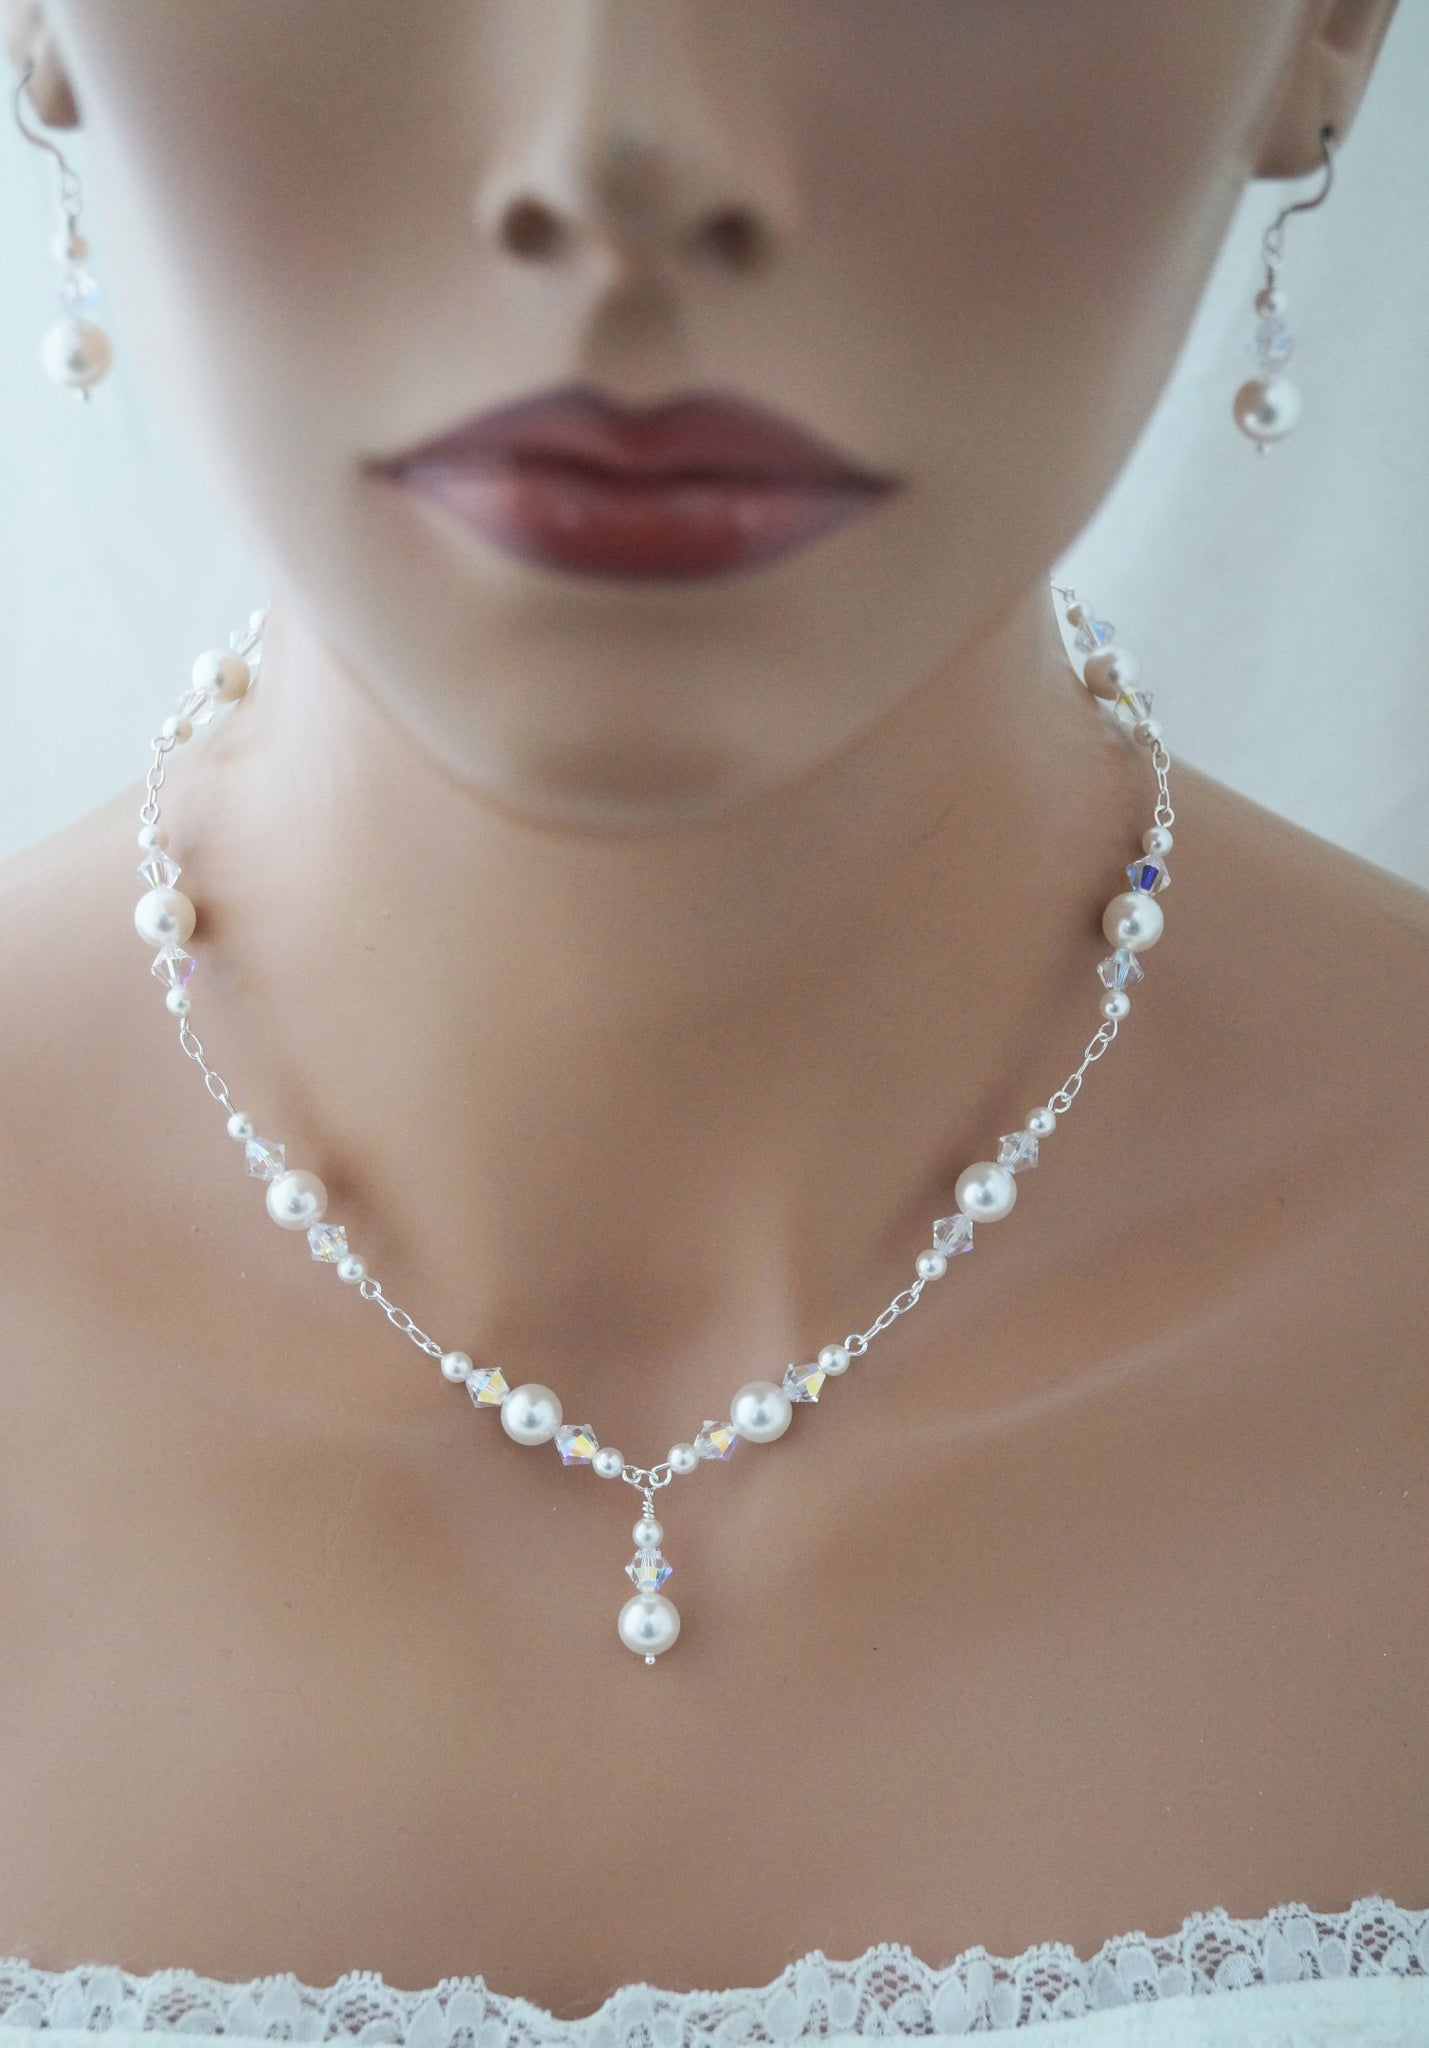 Pearl Wedding Necklace and Earrings Set Wedding Jewelry - Clairesbridal - 5